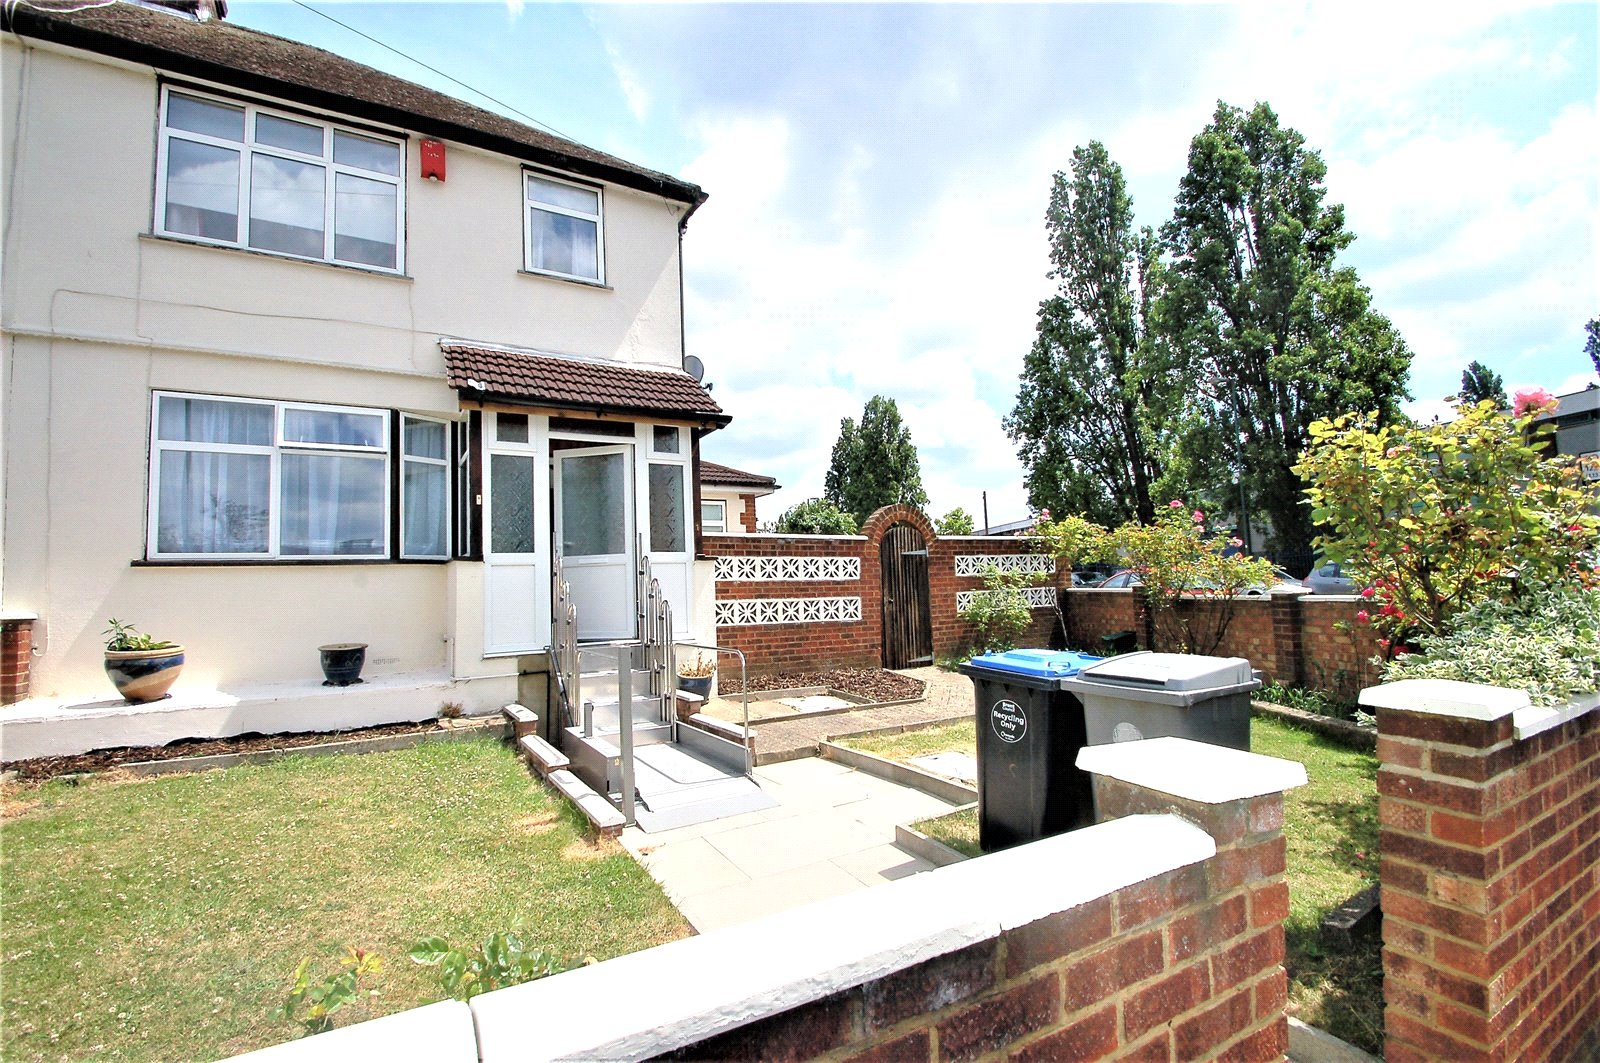 3 Bedrooms Terraced House for sale in Newcombe Park Wembley HA0